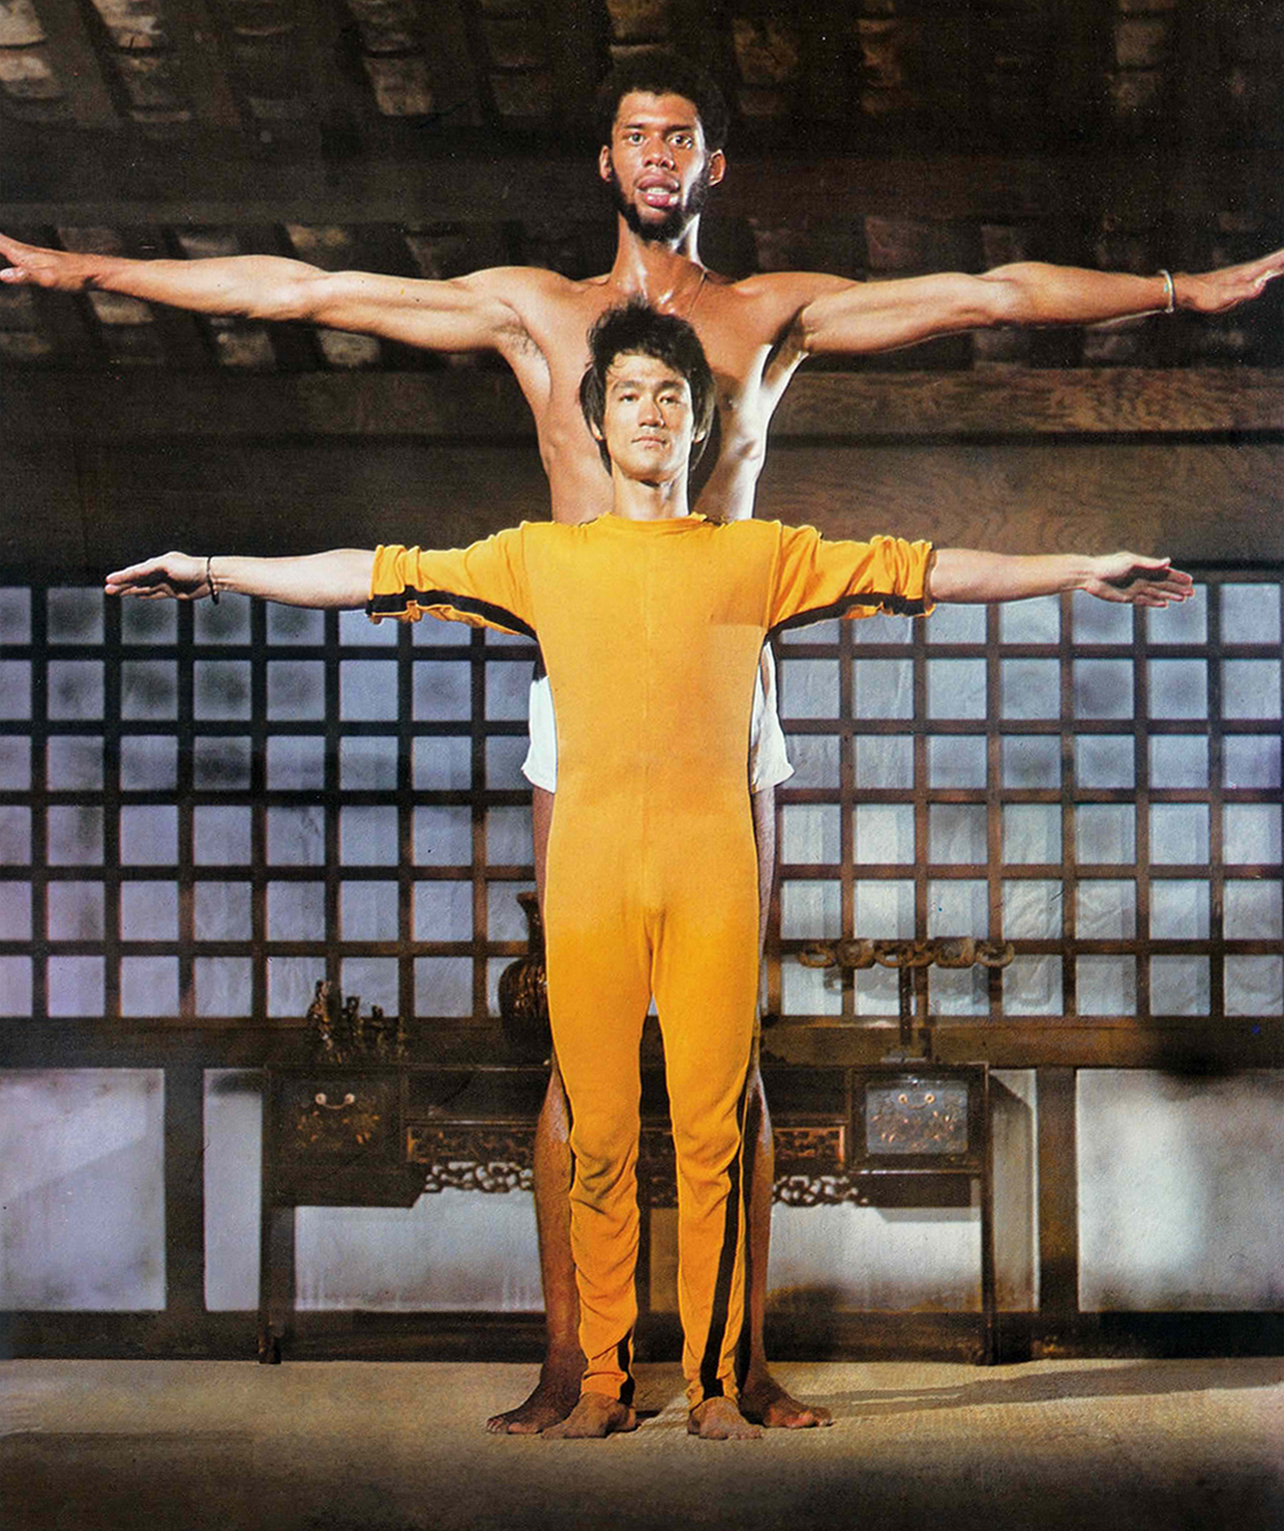 Game-of-Death-bruce-lee-final